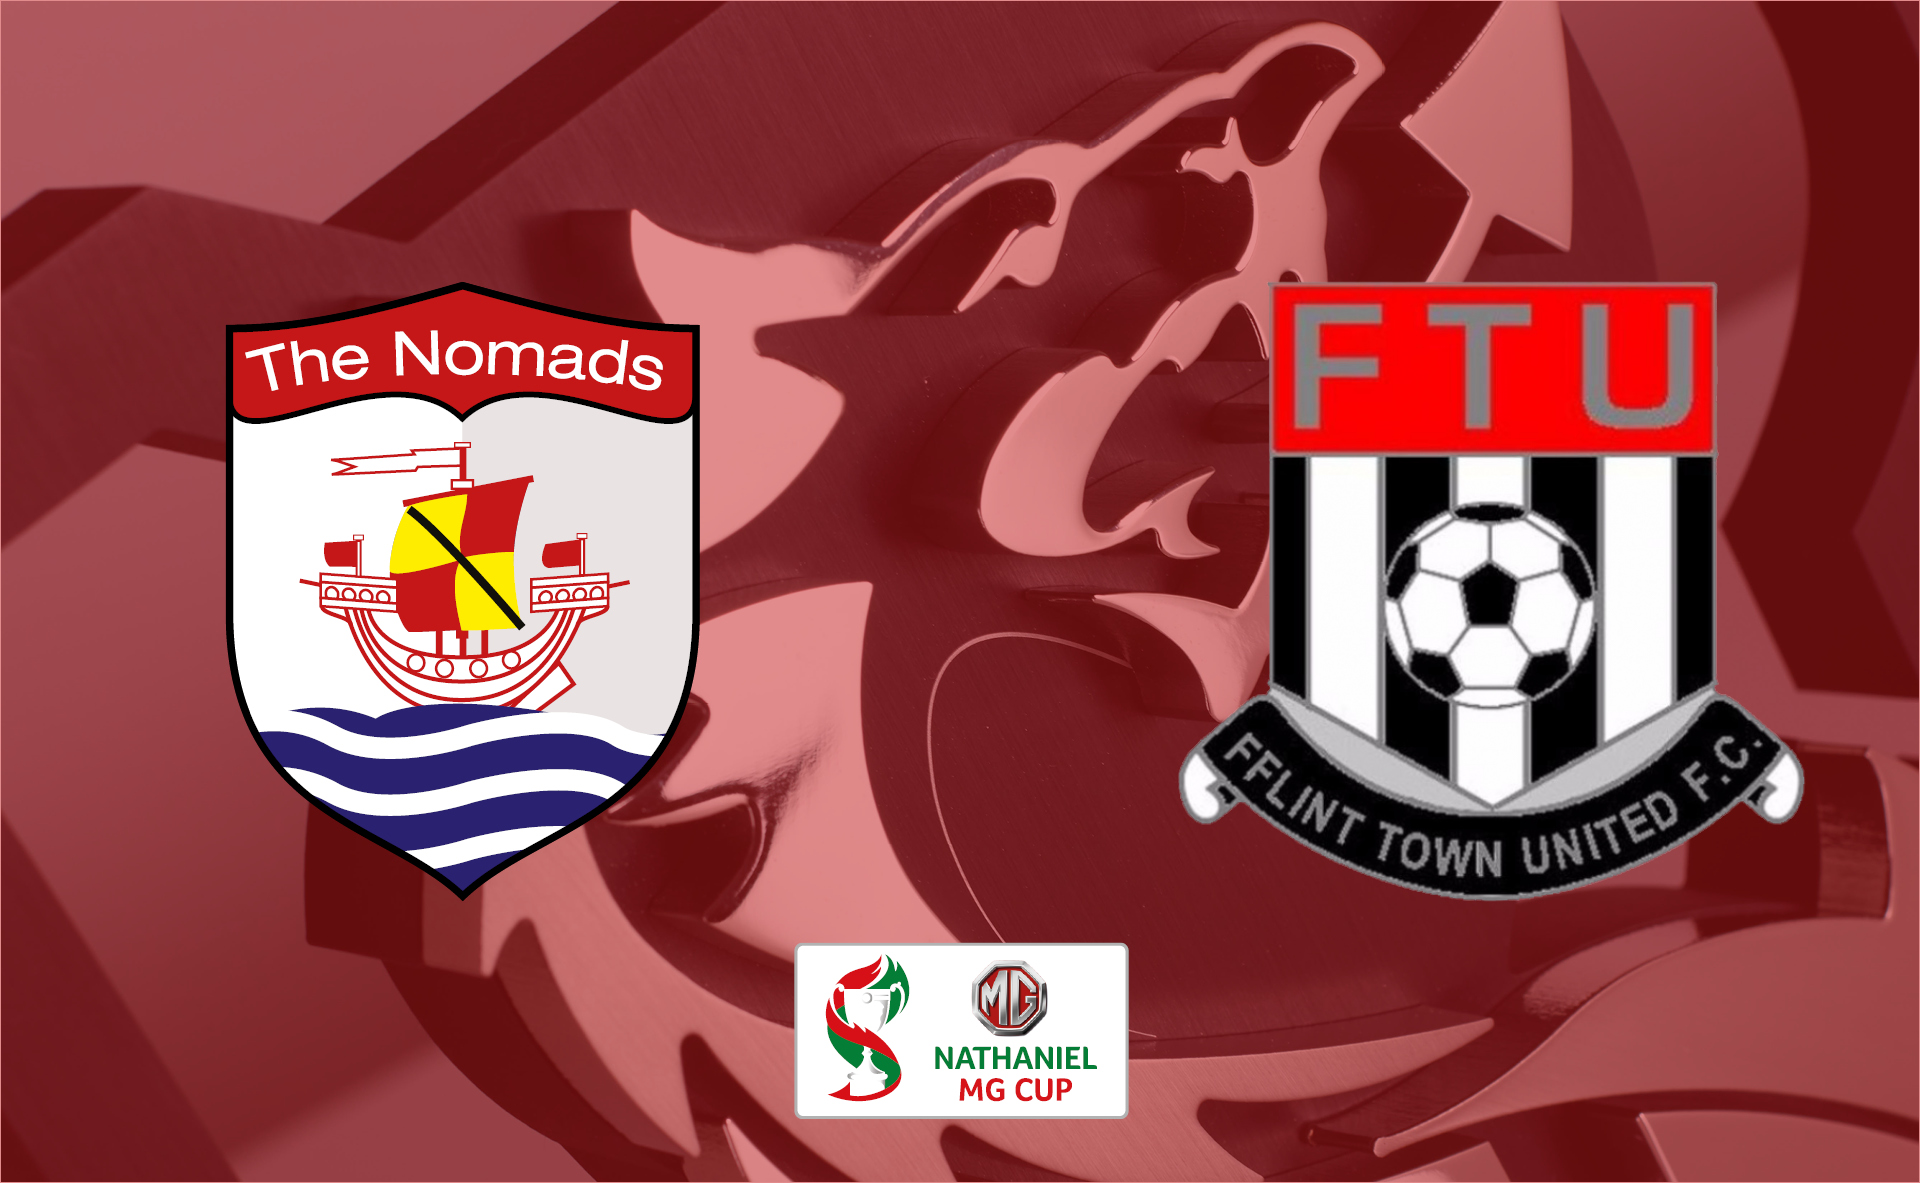 Connah's Quay Nomads vs Flint Town United in the Nathaniel MG Cup Quarter Finals